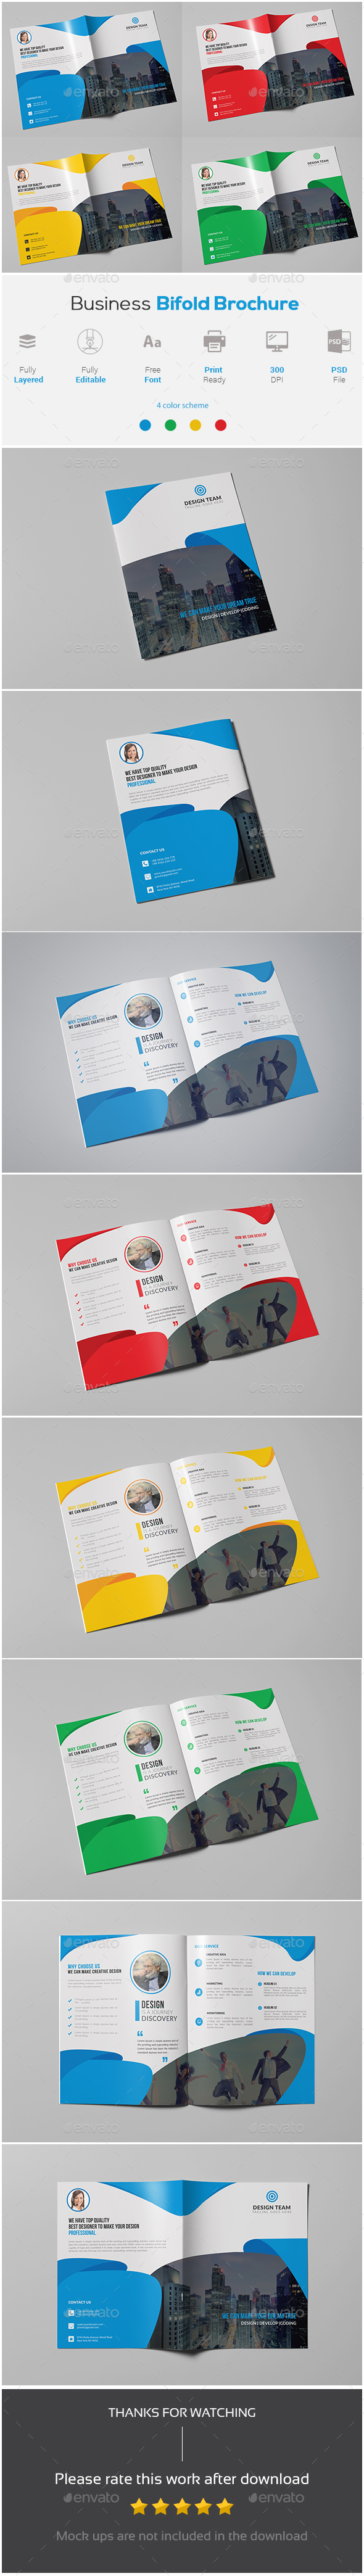 Business Bifold Brochure Template - Corporate Brochures